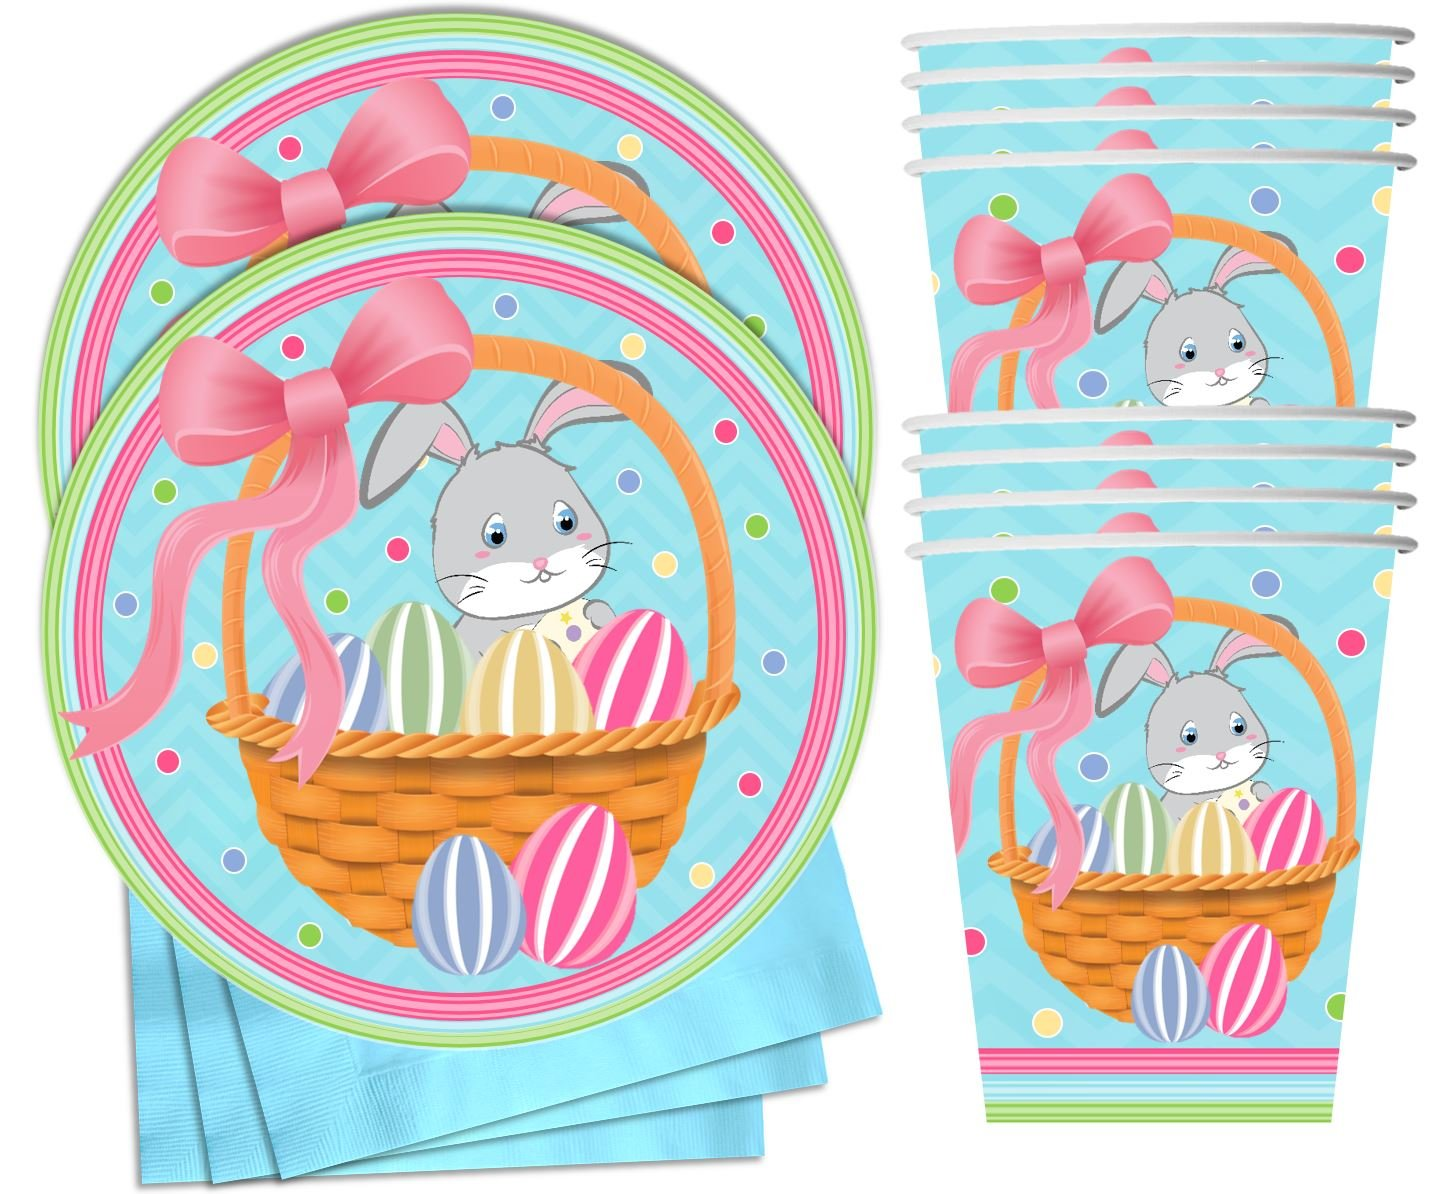 Perfect Easter Party Supplies and Easter Party Decorations! Cups Easter Party Supplies /& Decorations Easter Bunny Plates Napkins /& Forks for 16 People